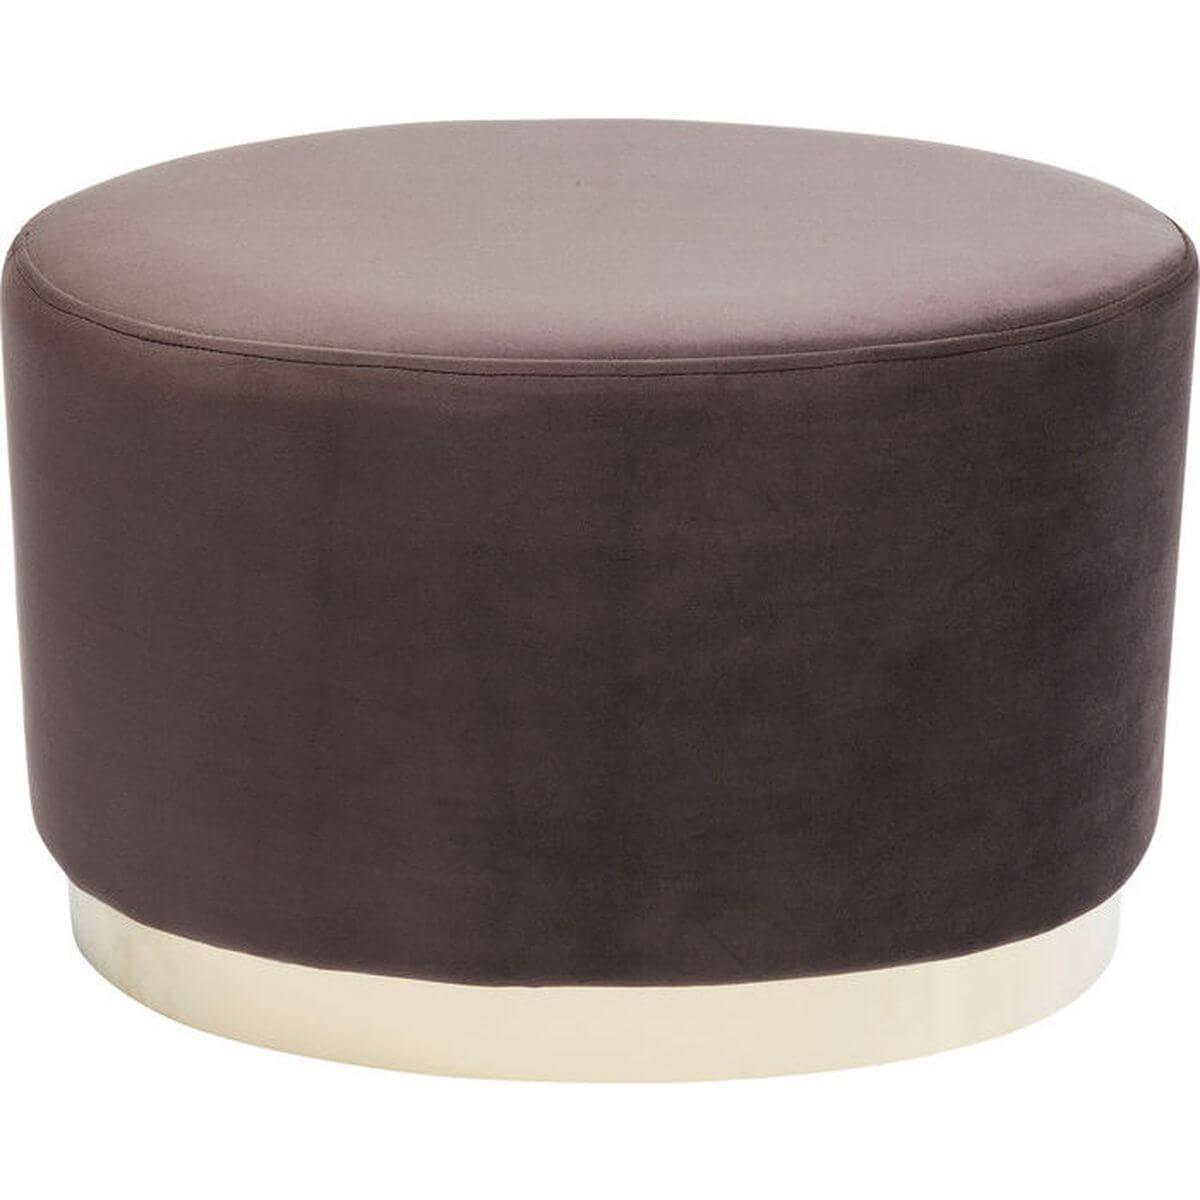 Tabouret CHERRY ECLIPSE Kare Design marron/laiton